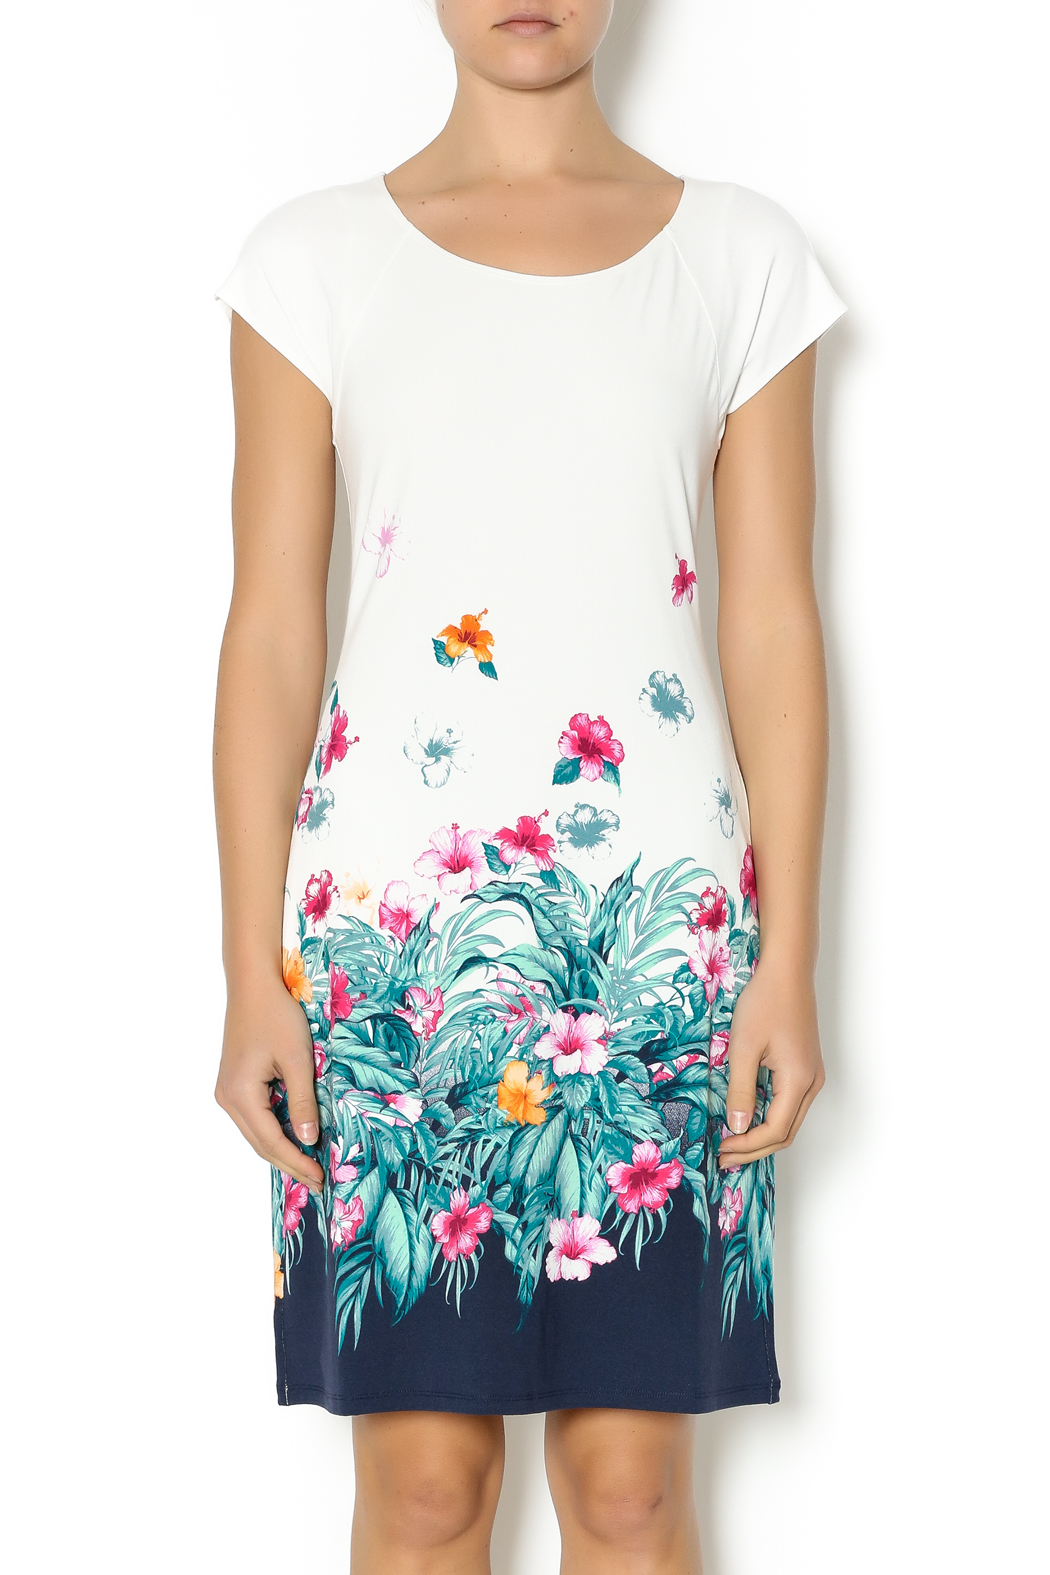 Tommy bahama ivory floral dress from florida by adventures for Tommy bahama florida shirt